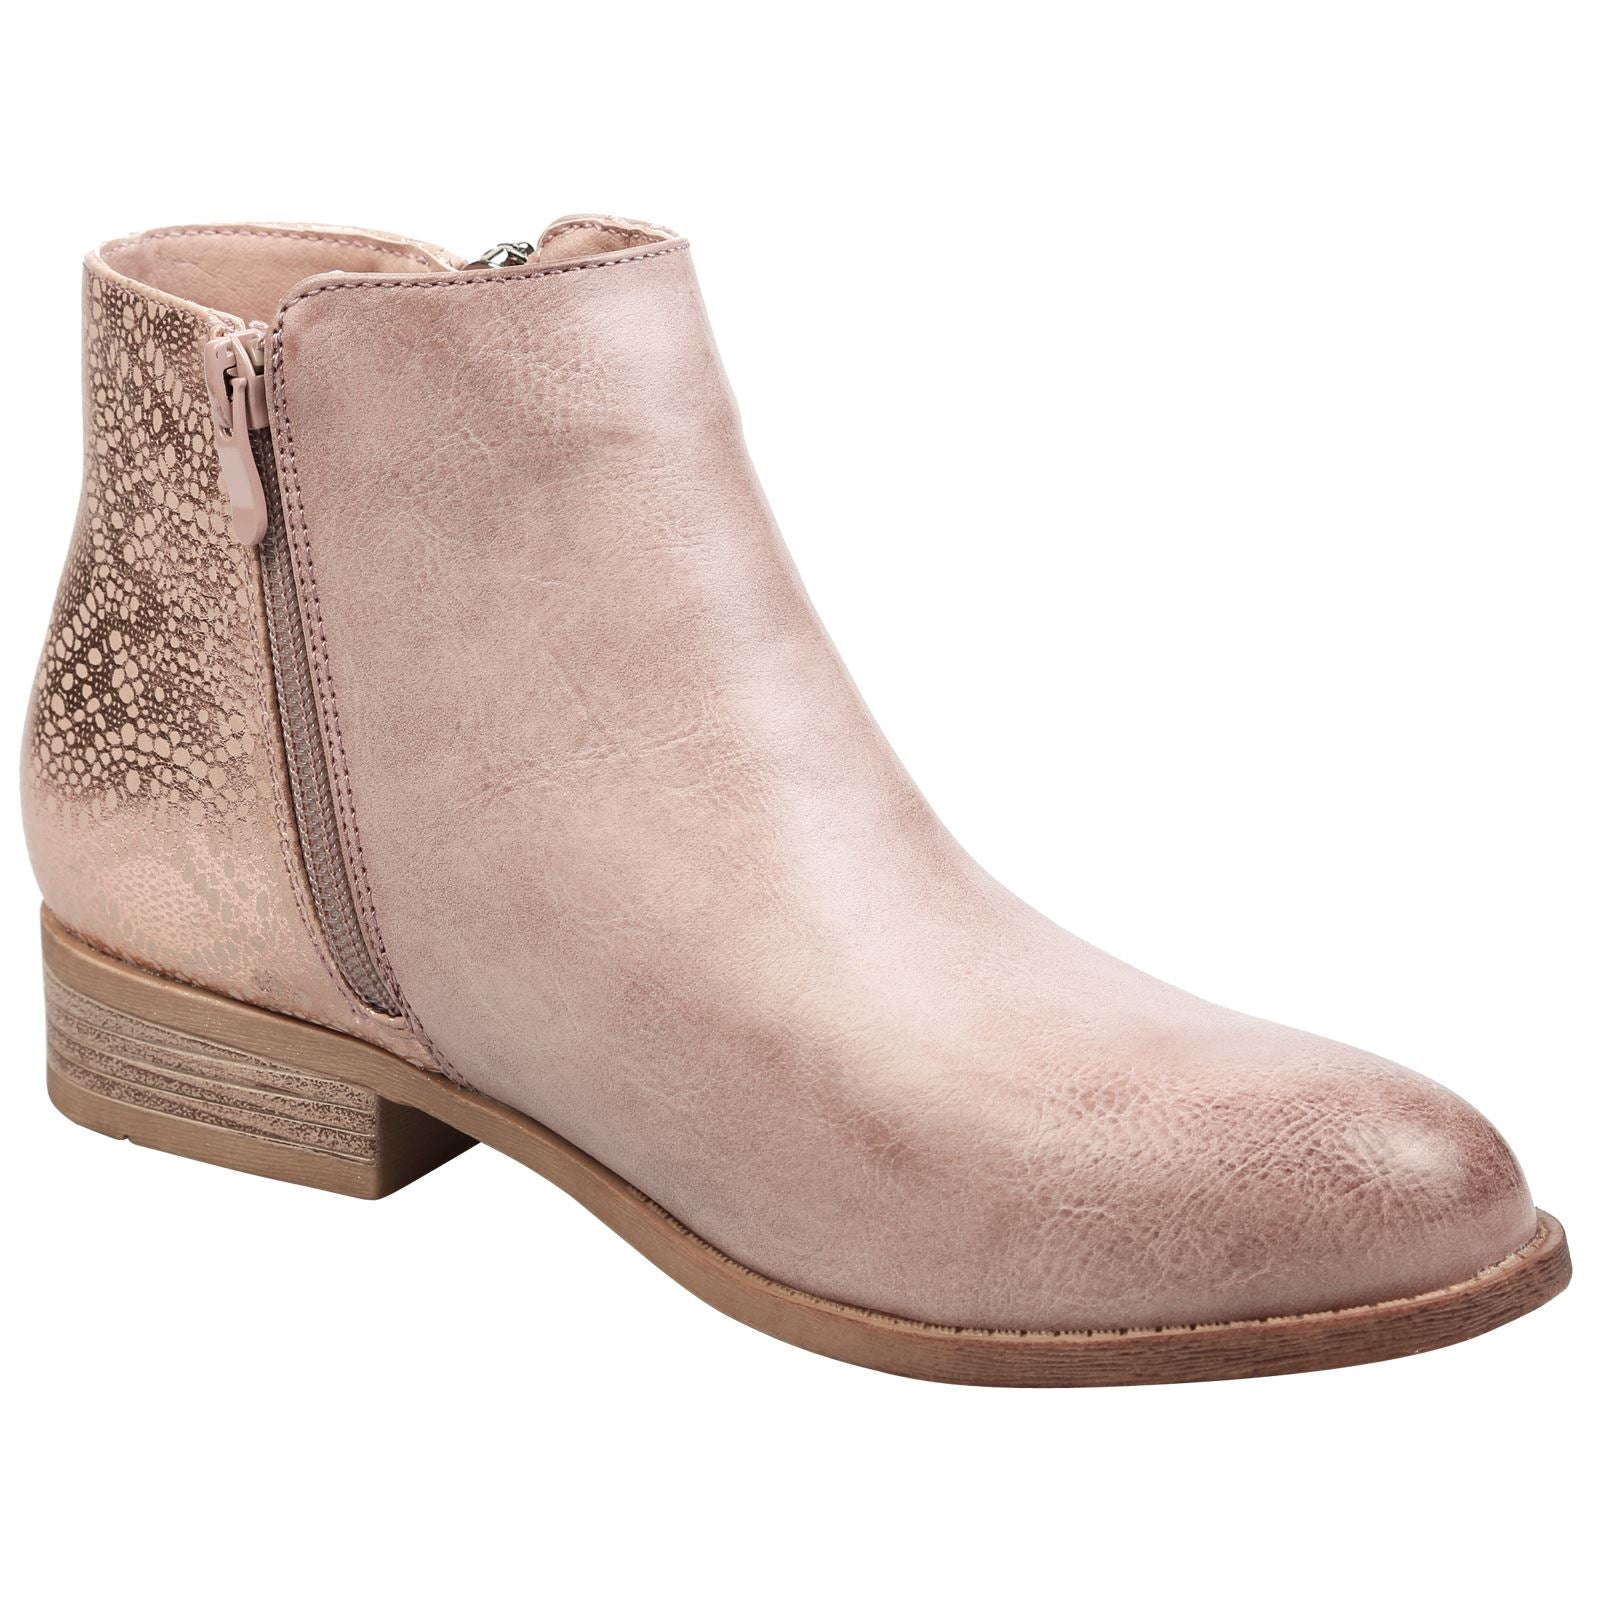 Evangelista Two Tone Zip Detail Ankle Boots in Pink Faux Leather